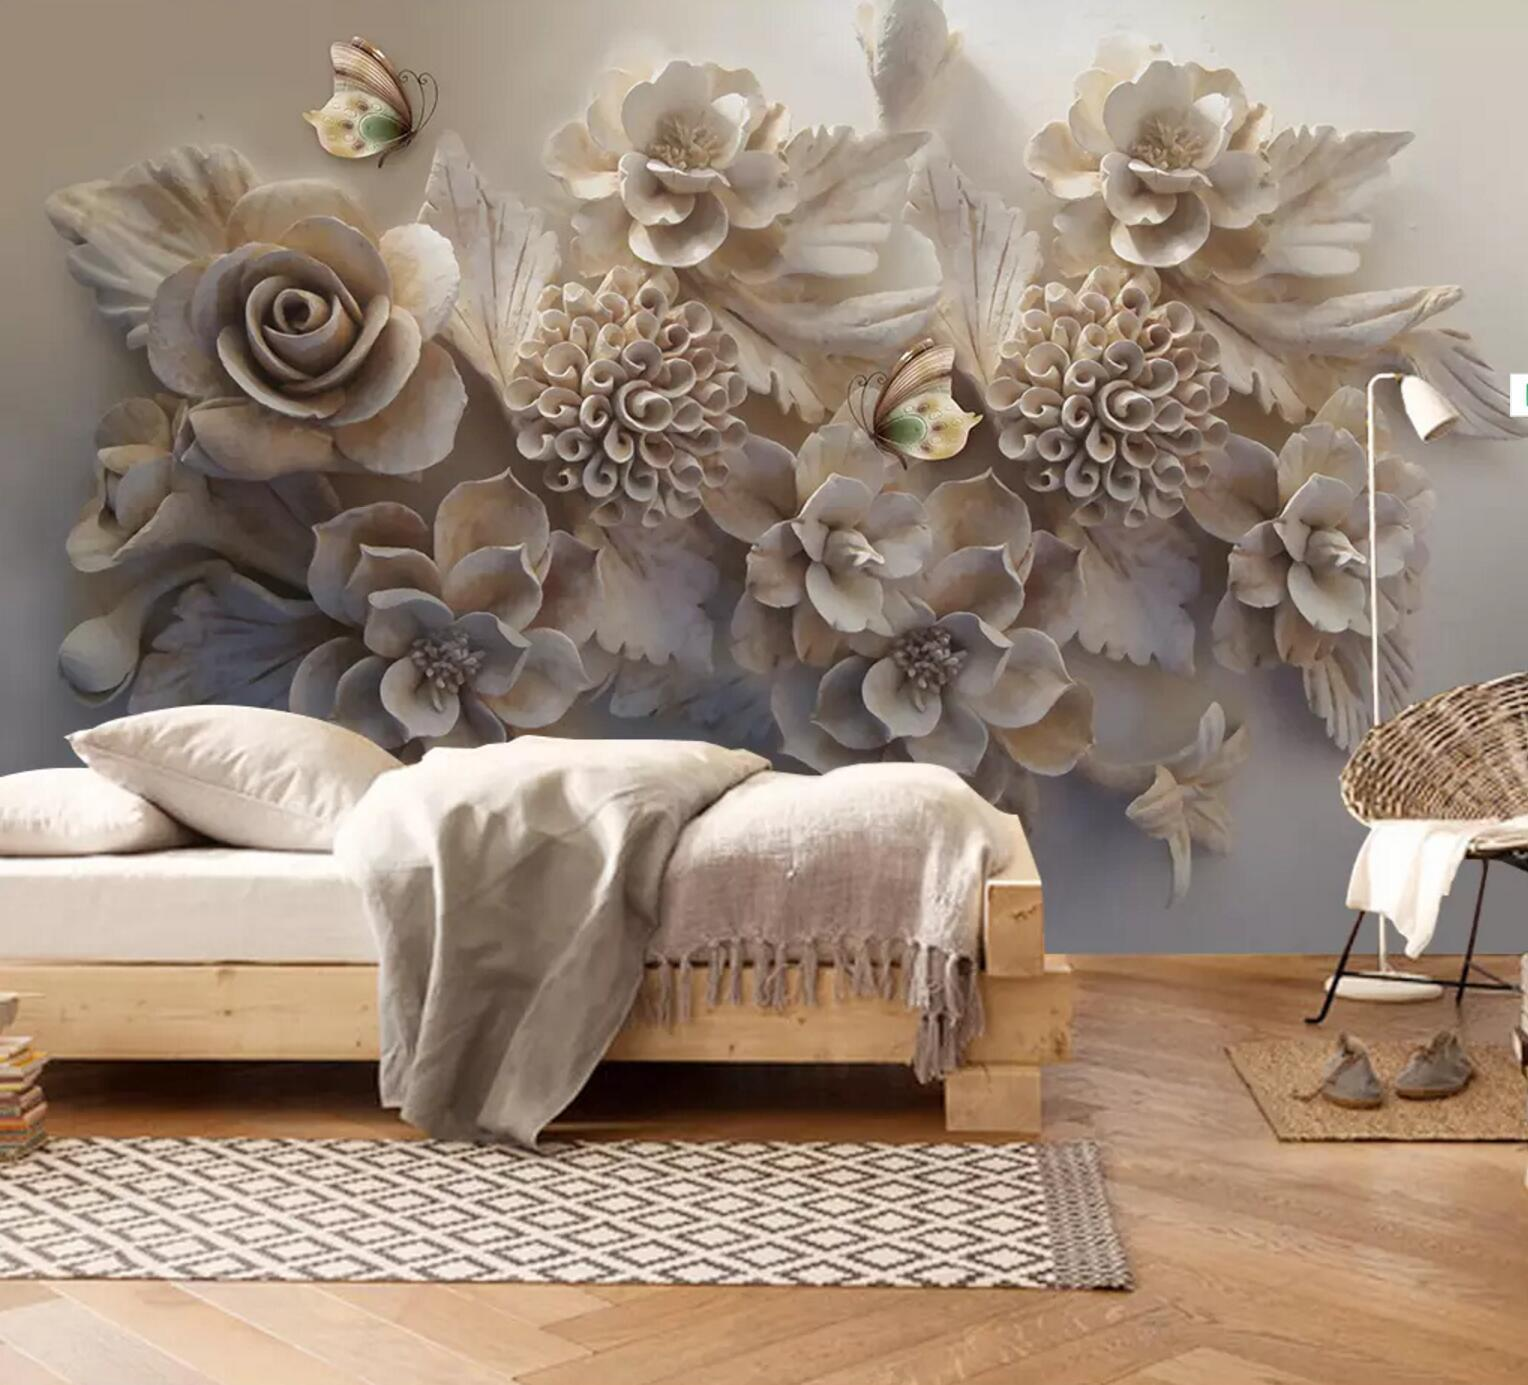 3D Sculpture Flower 243 Wallpaper AJ Wallpaper